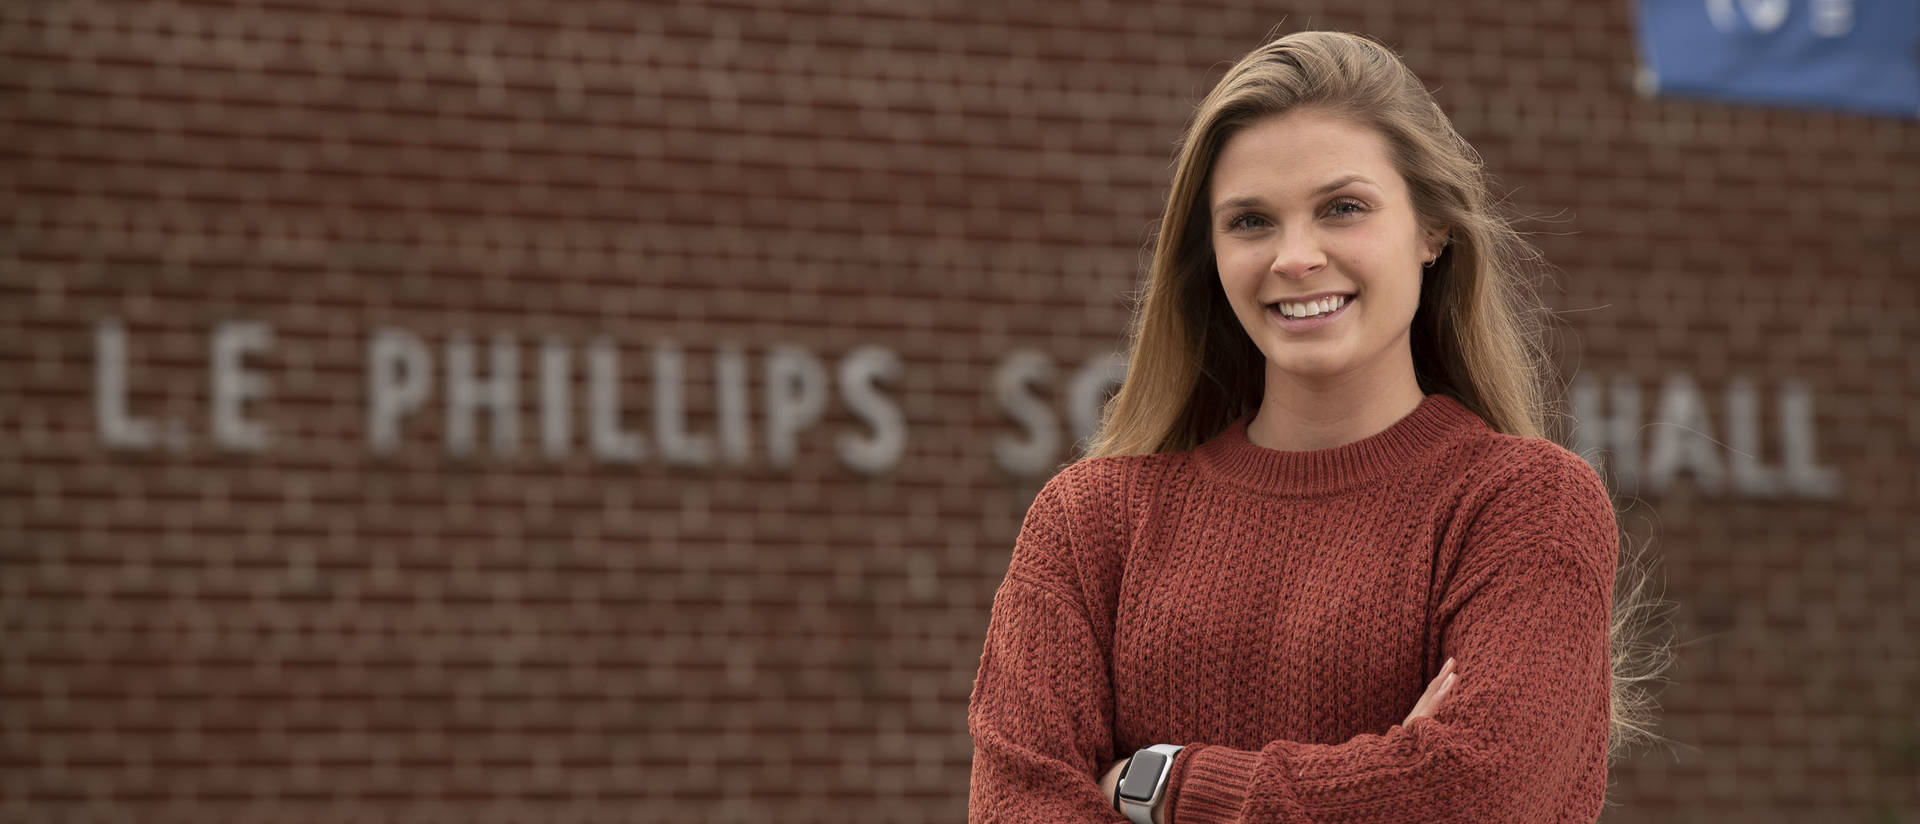 As a Blugold, Callie Vogel found a variety of experiences on campus, in the community and in other parts of the world that helped her gain the knowledge, experiences and confidence she needs to pursue a career in medicine.